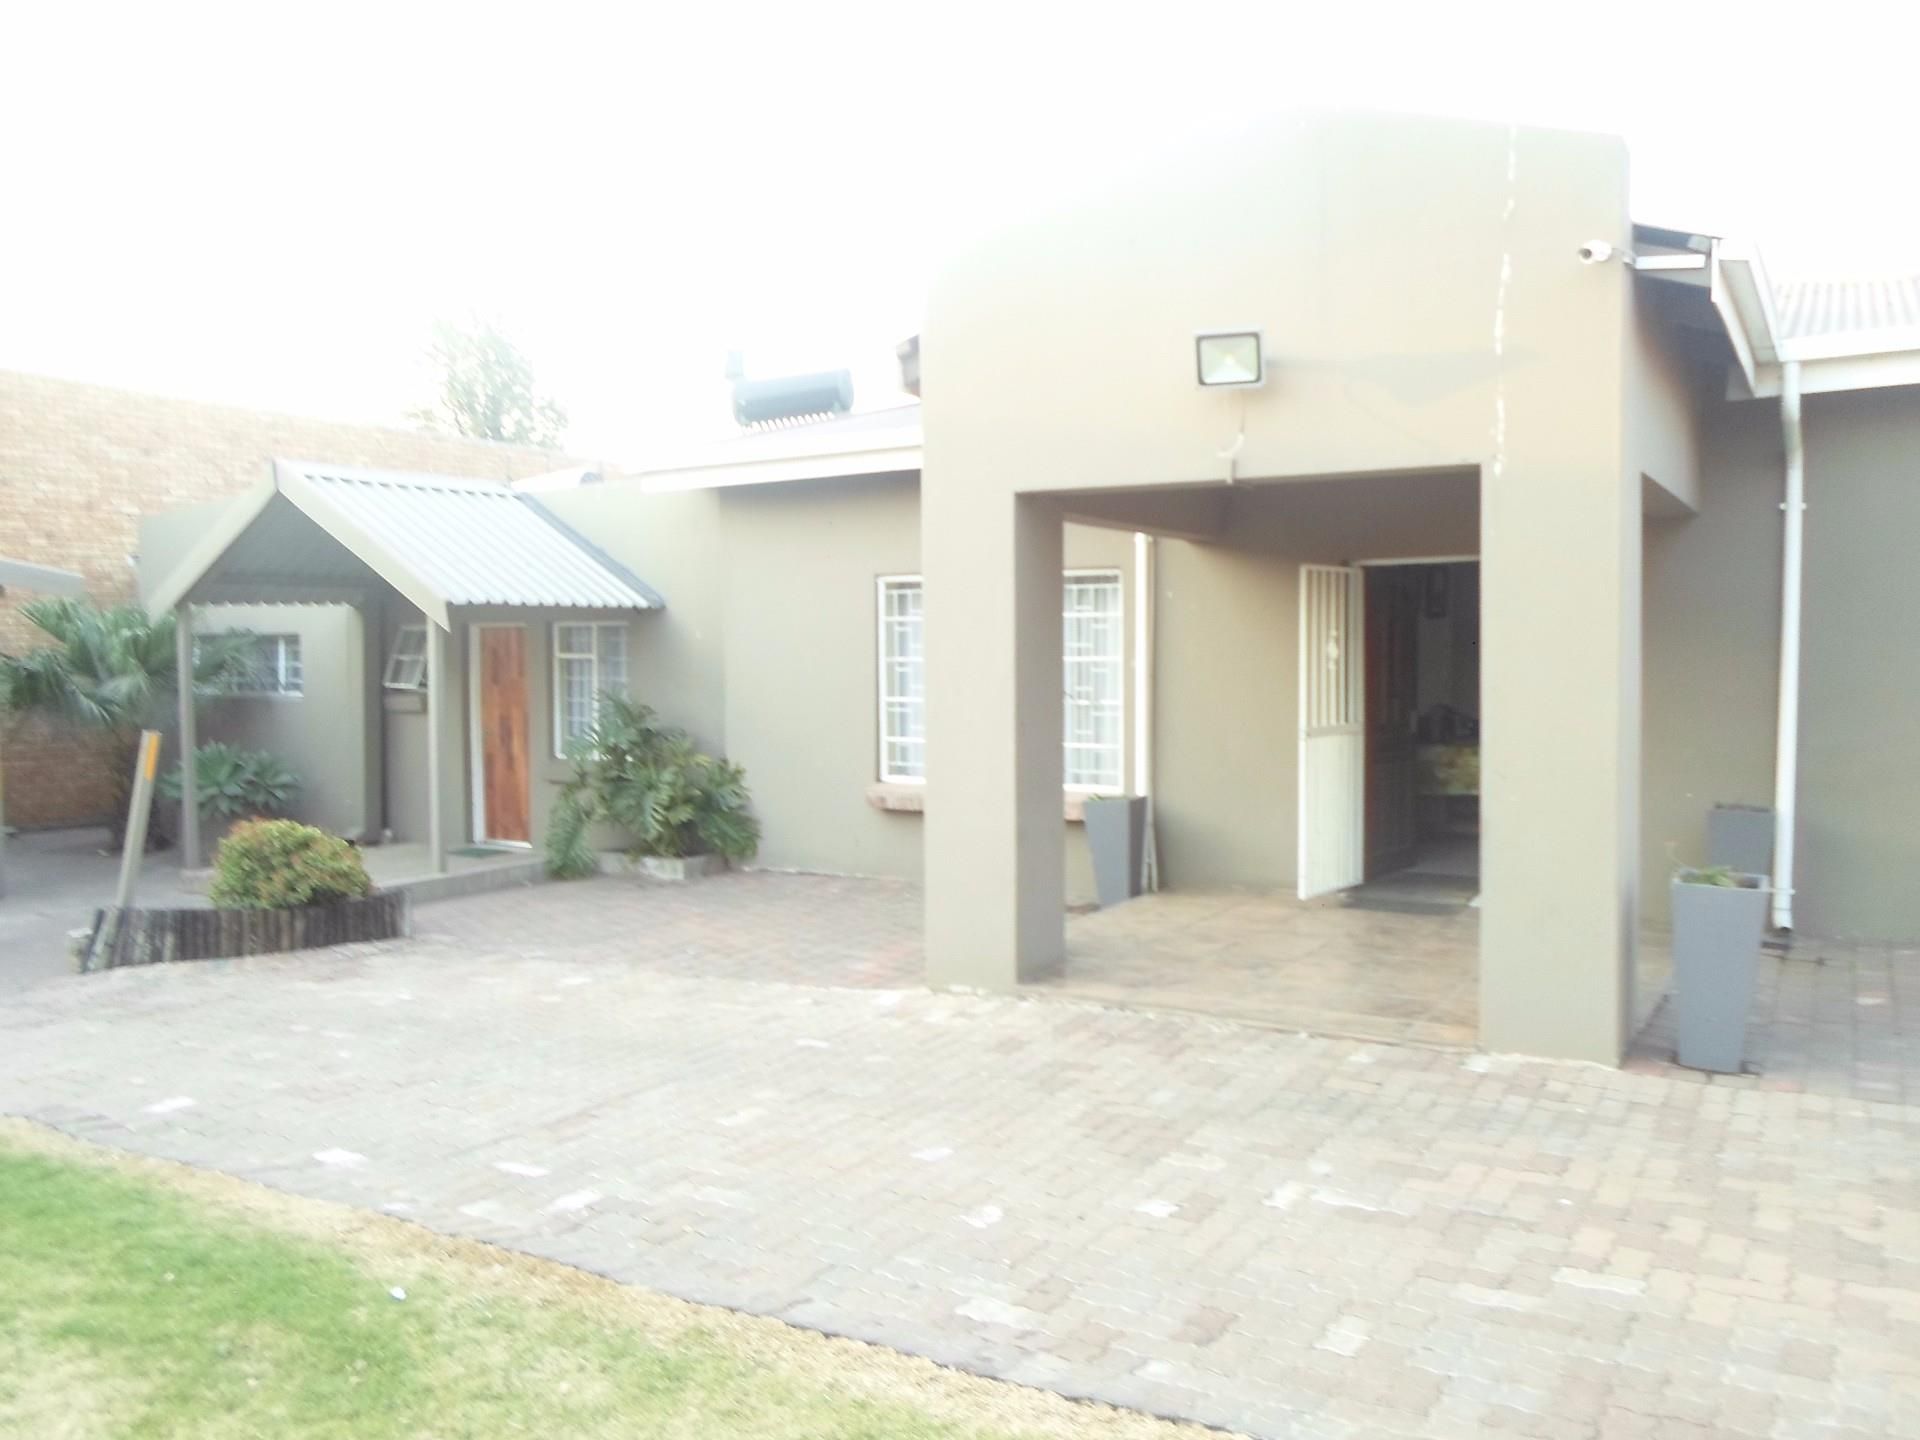 16 Bedroom House For Sale in Witbank Central